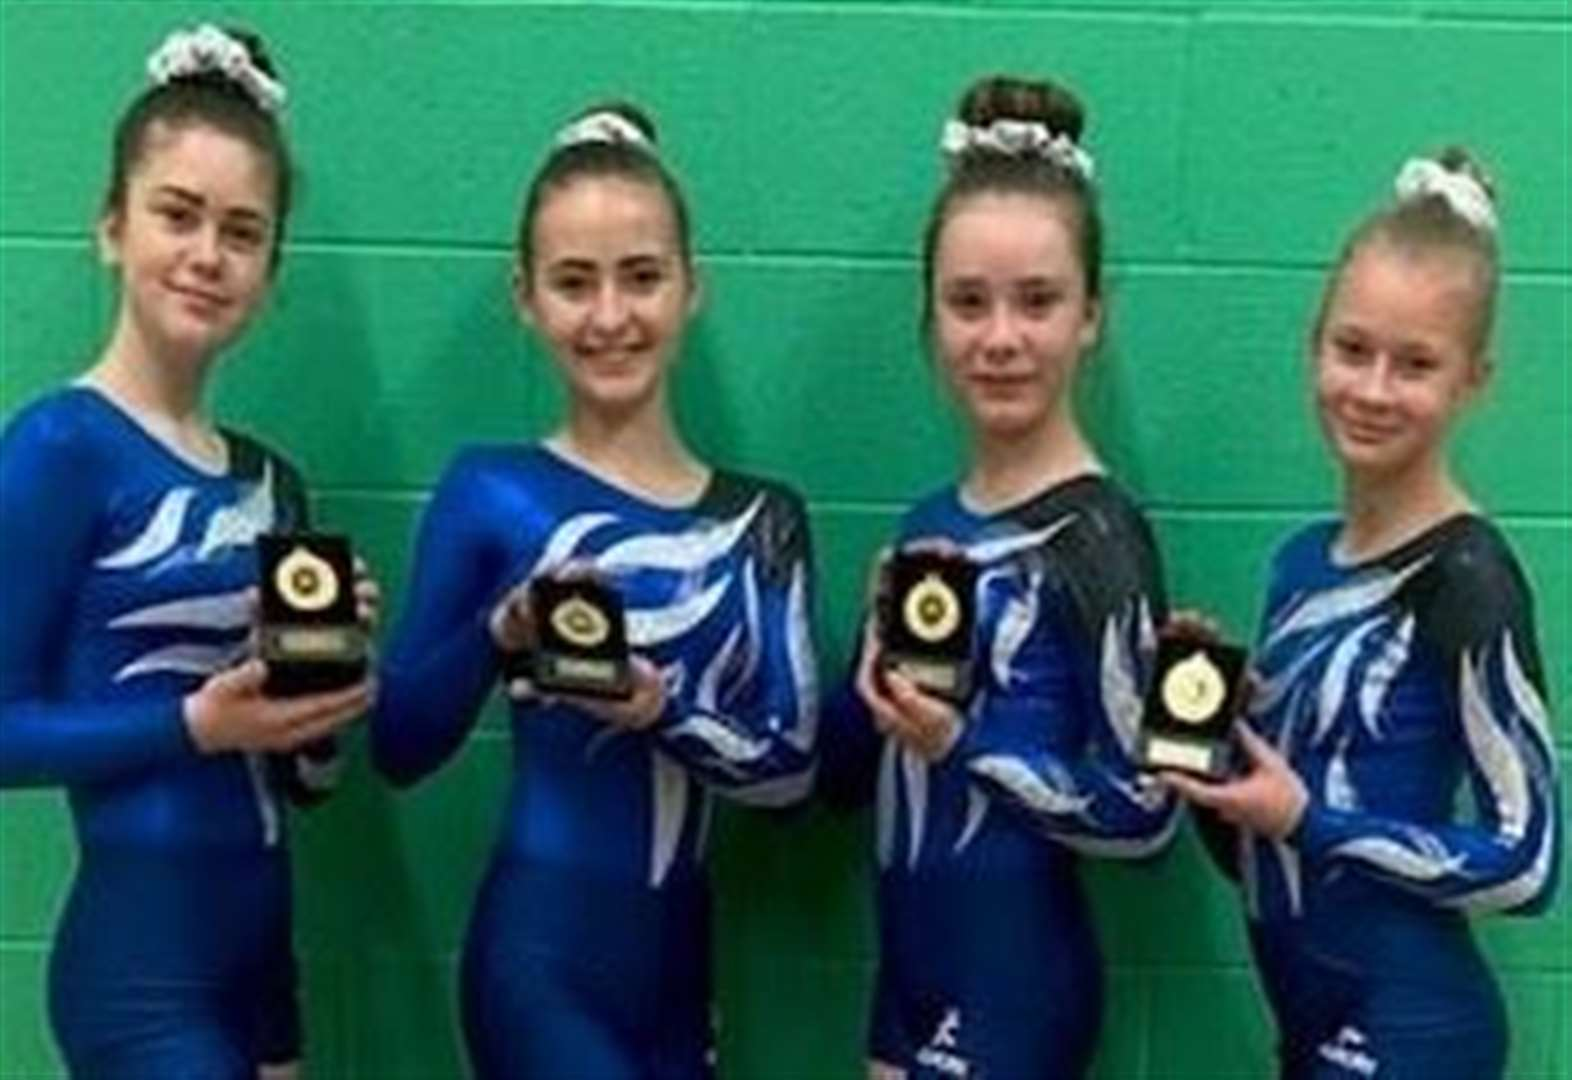 GYMNASTICS: Academy aces qualify for nationals